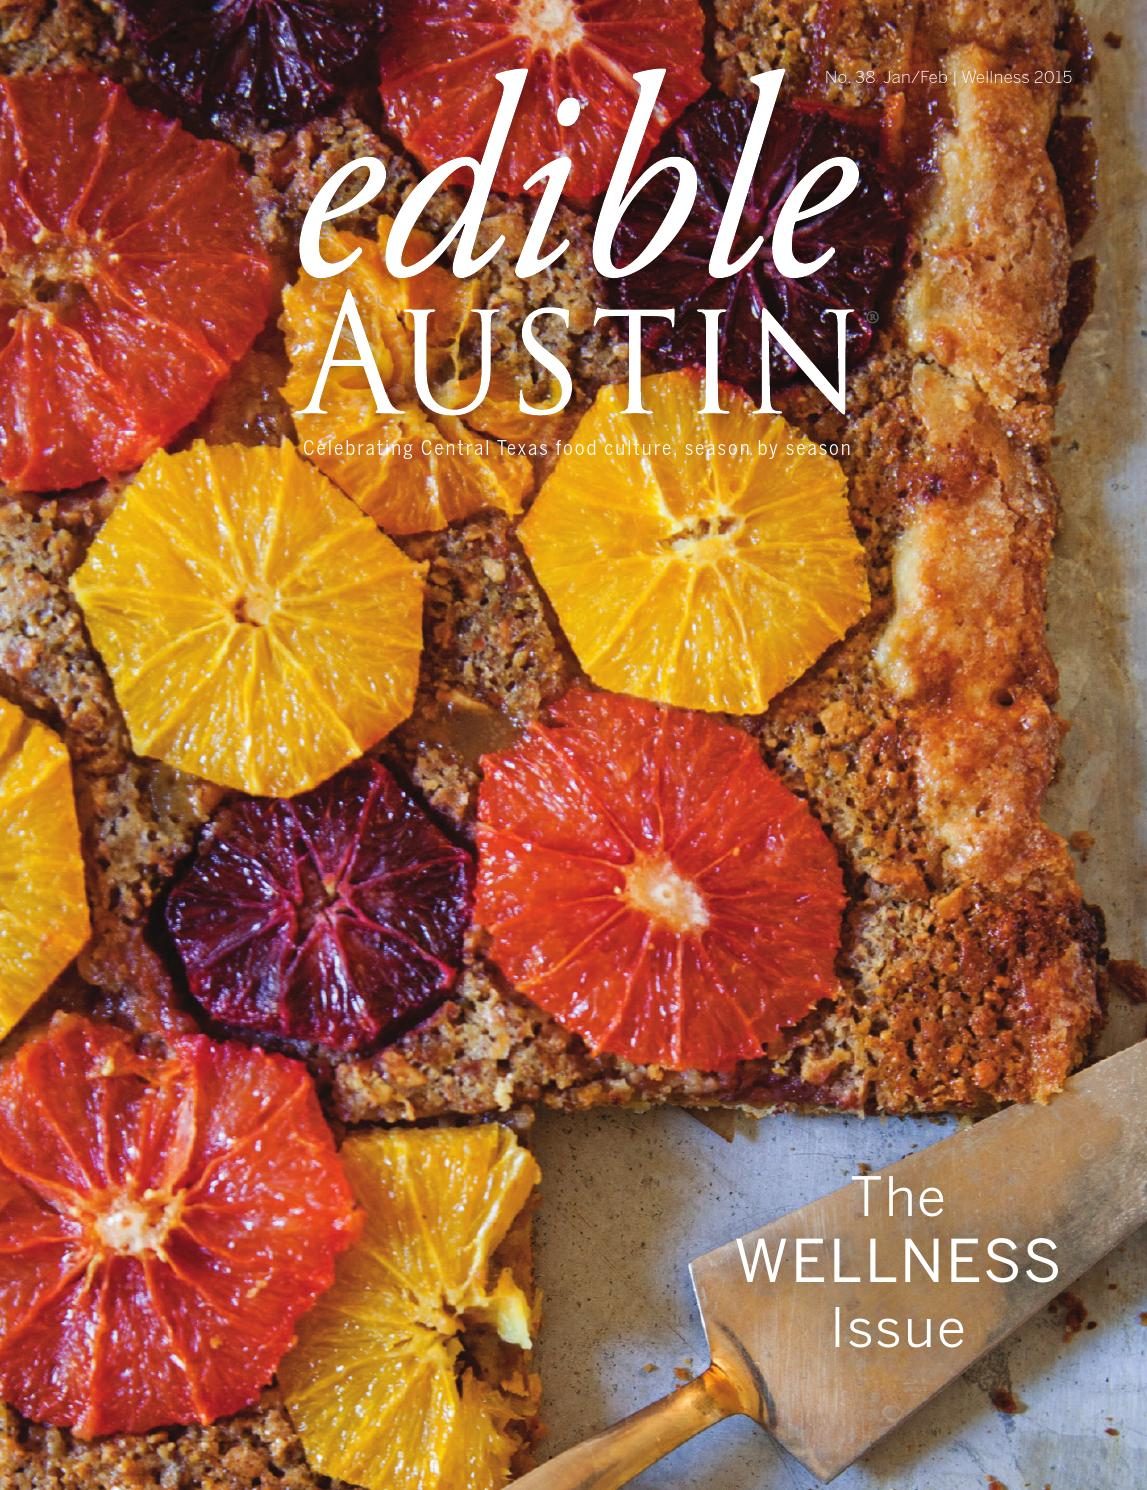 Edible Austin Wellness Issue 2015 by Edible Austin - issuu